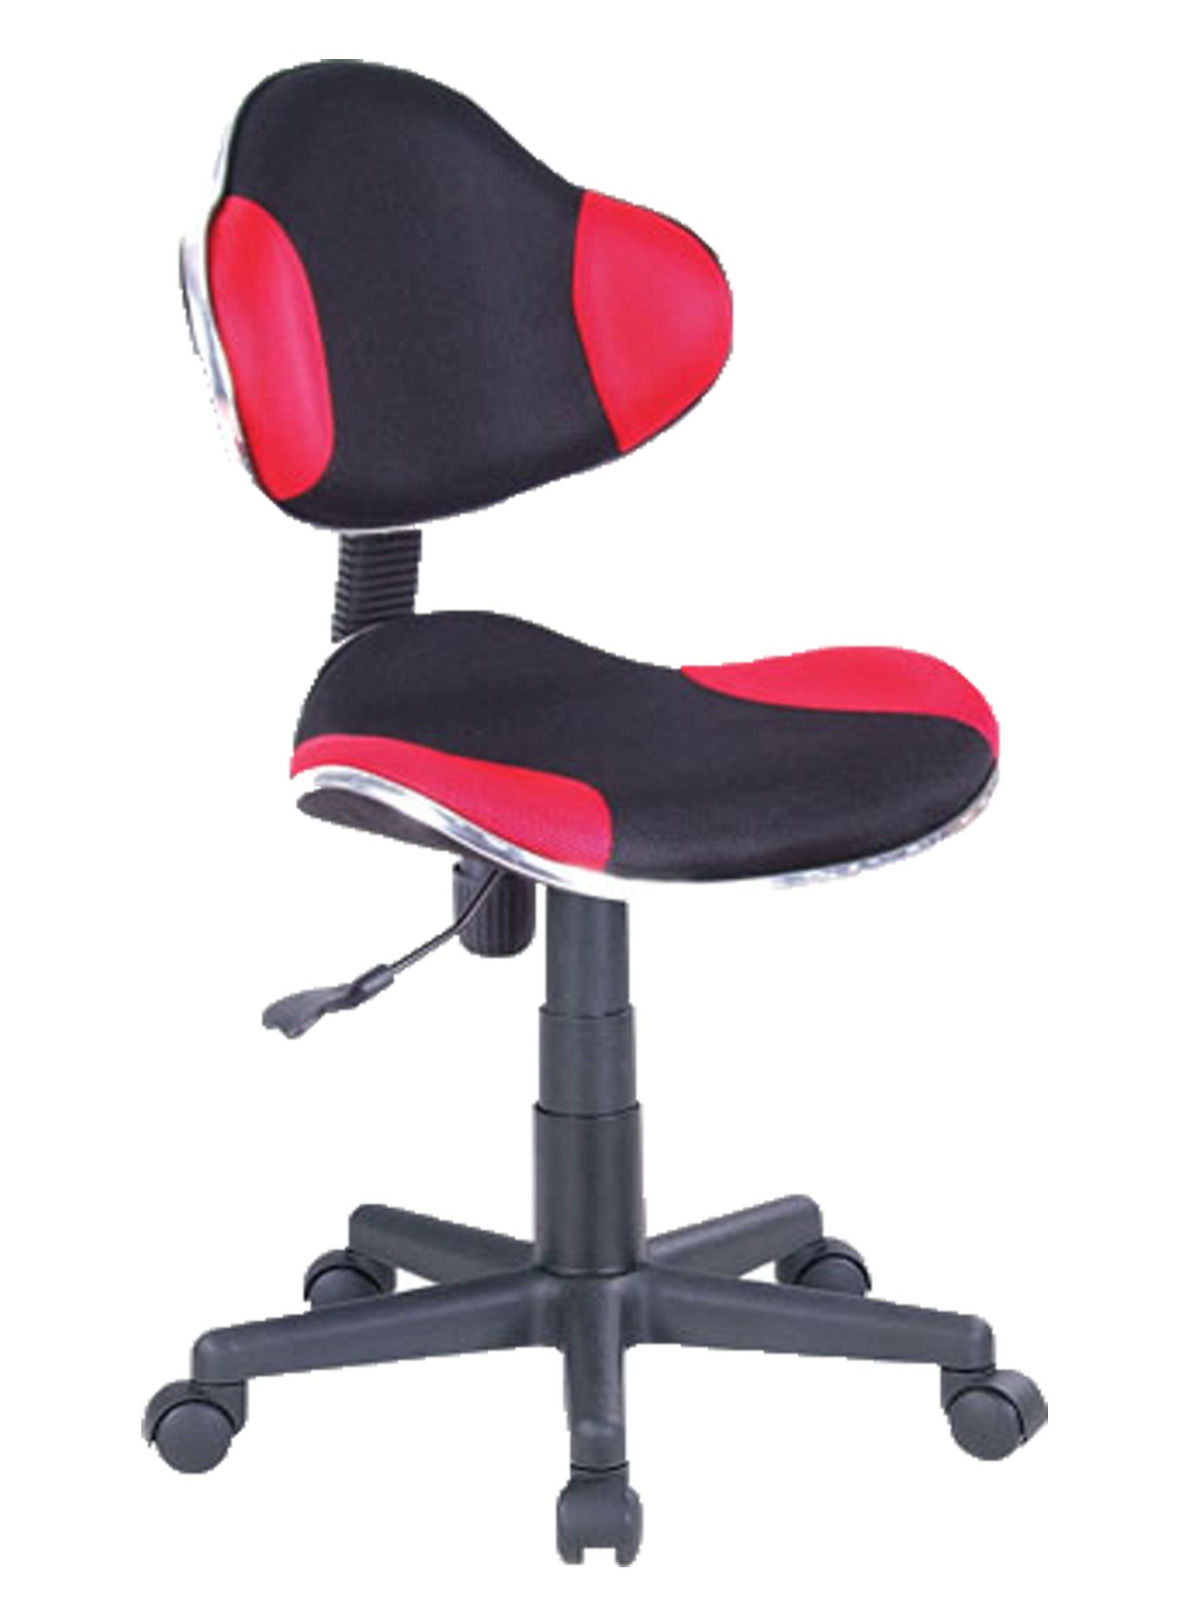 Computer Desk Office Chair w Red Mesh Fabric